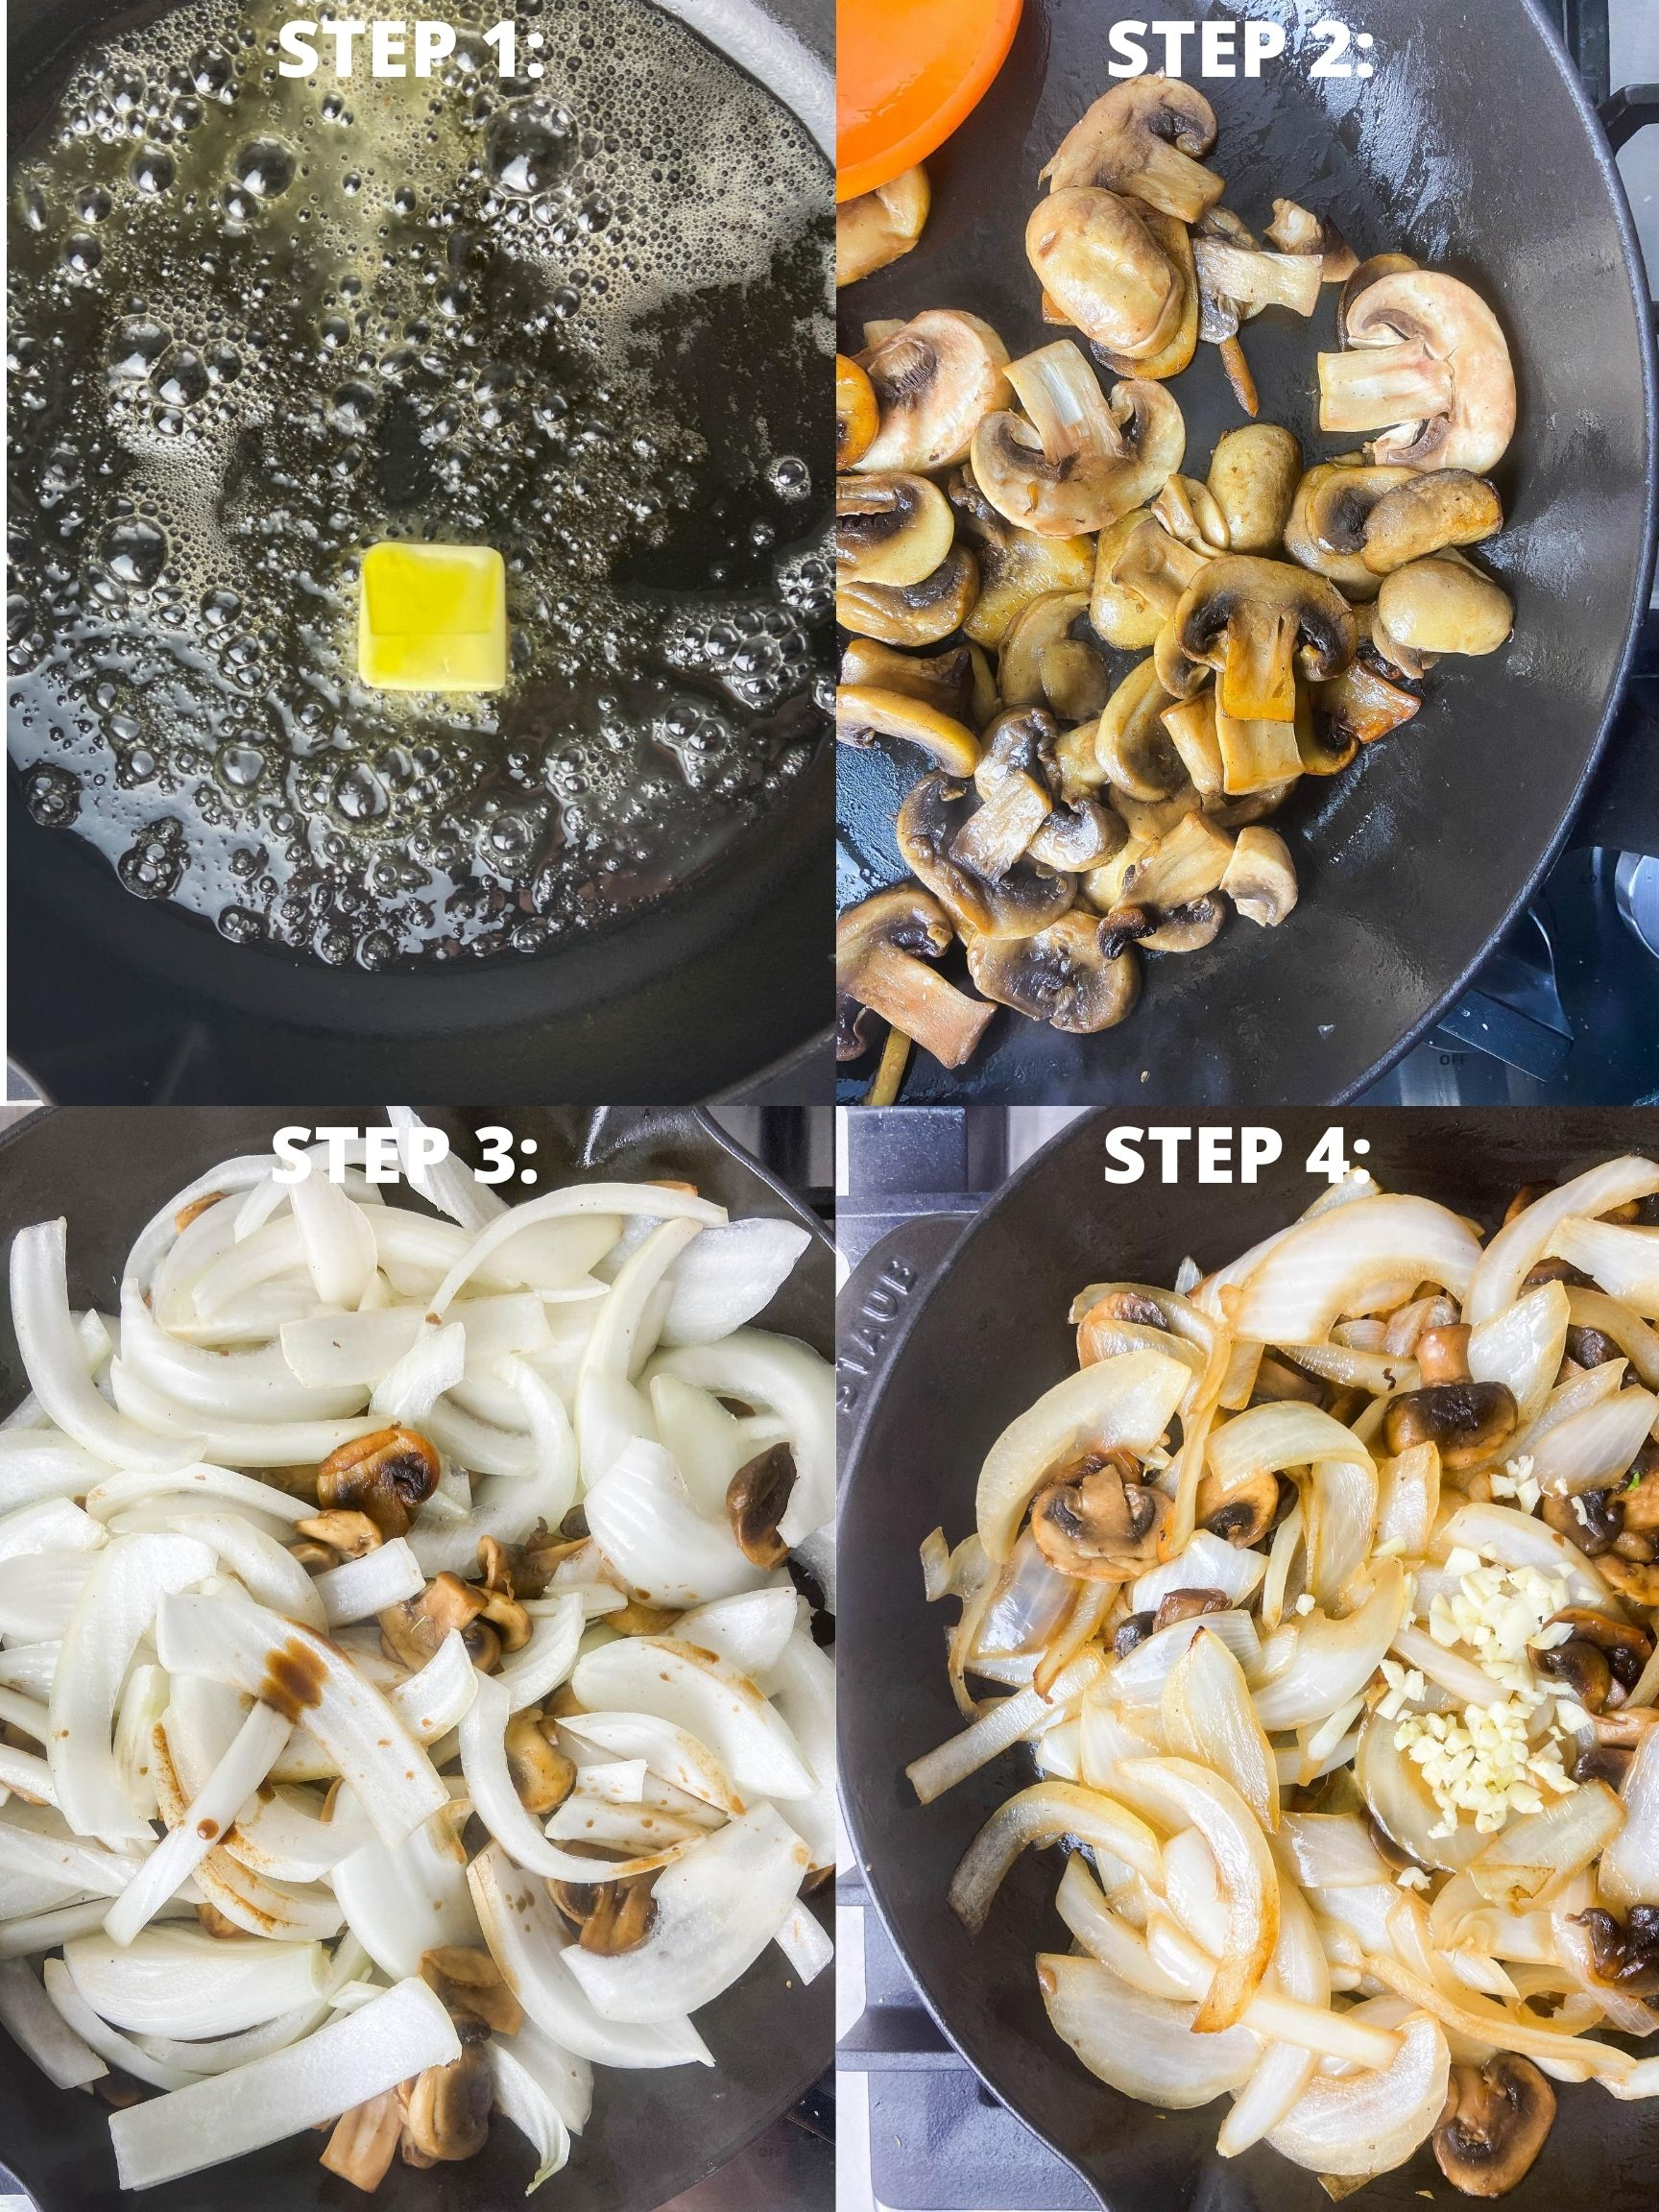 Step by step photos for how to make sauteed mushrooms and onions.